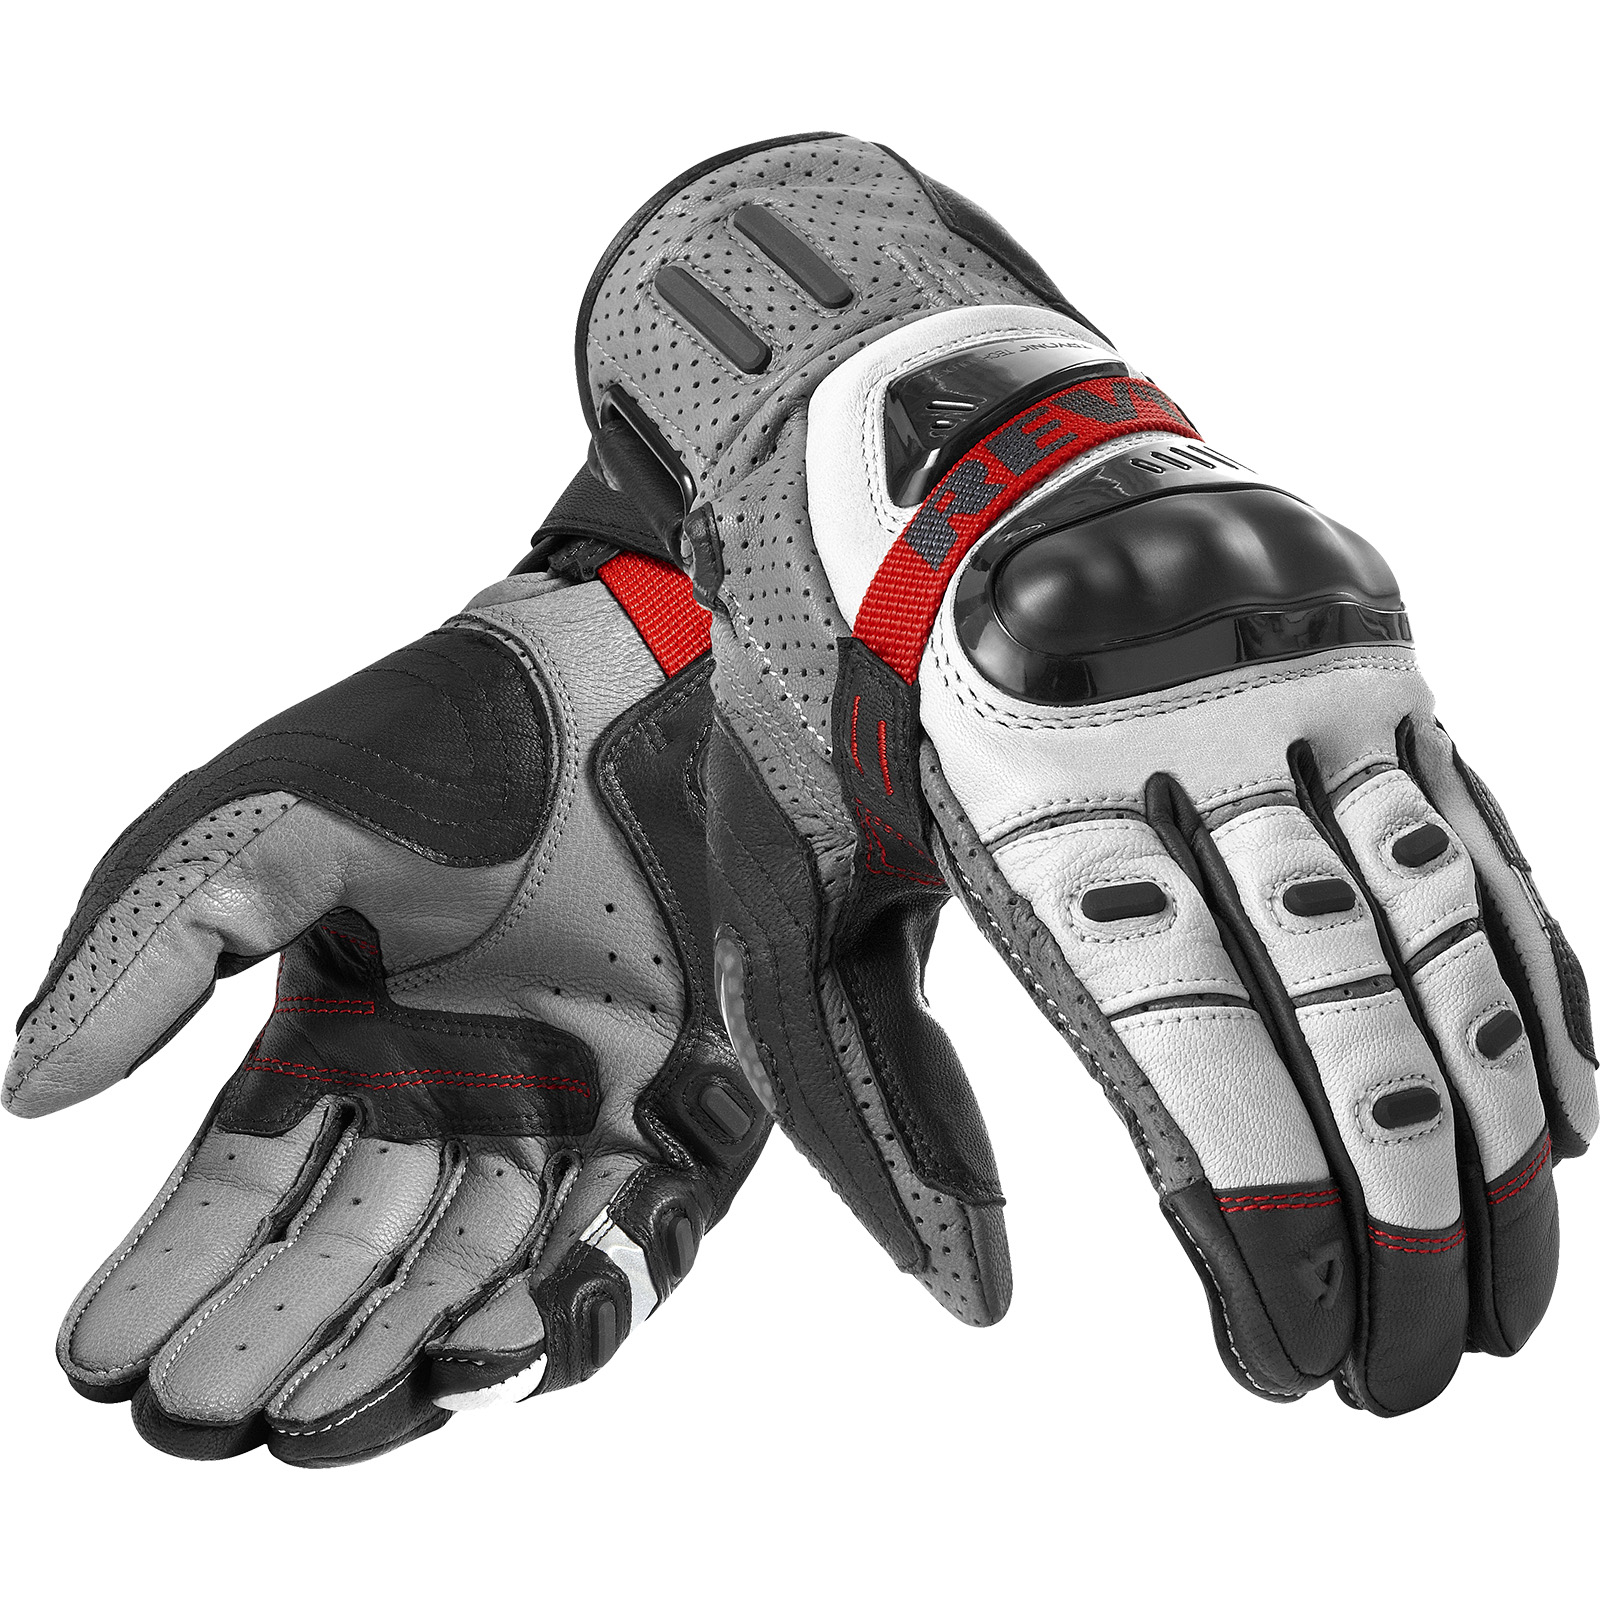 Motorcycle gloves for summer - Rev It Cayenne Pro Motorcycle Summer Gloves Bike Vented Durable